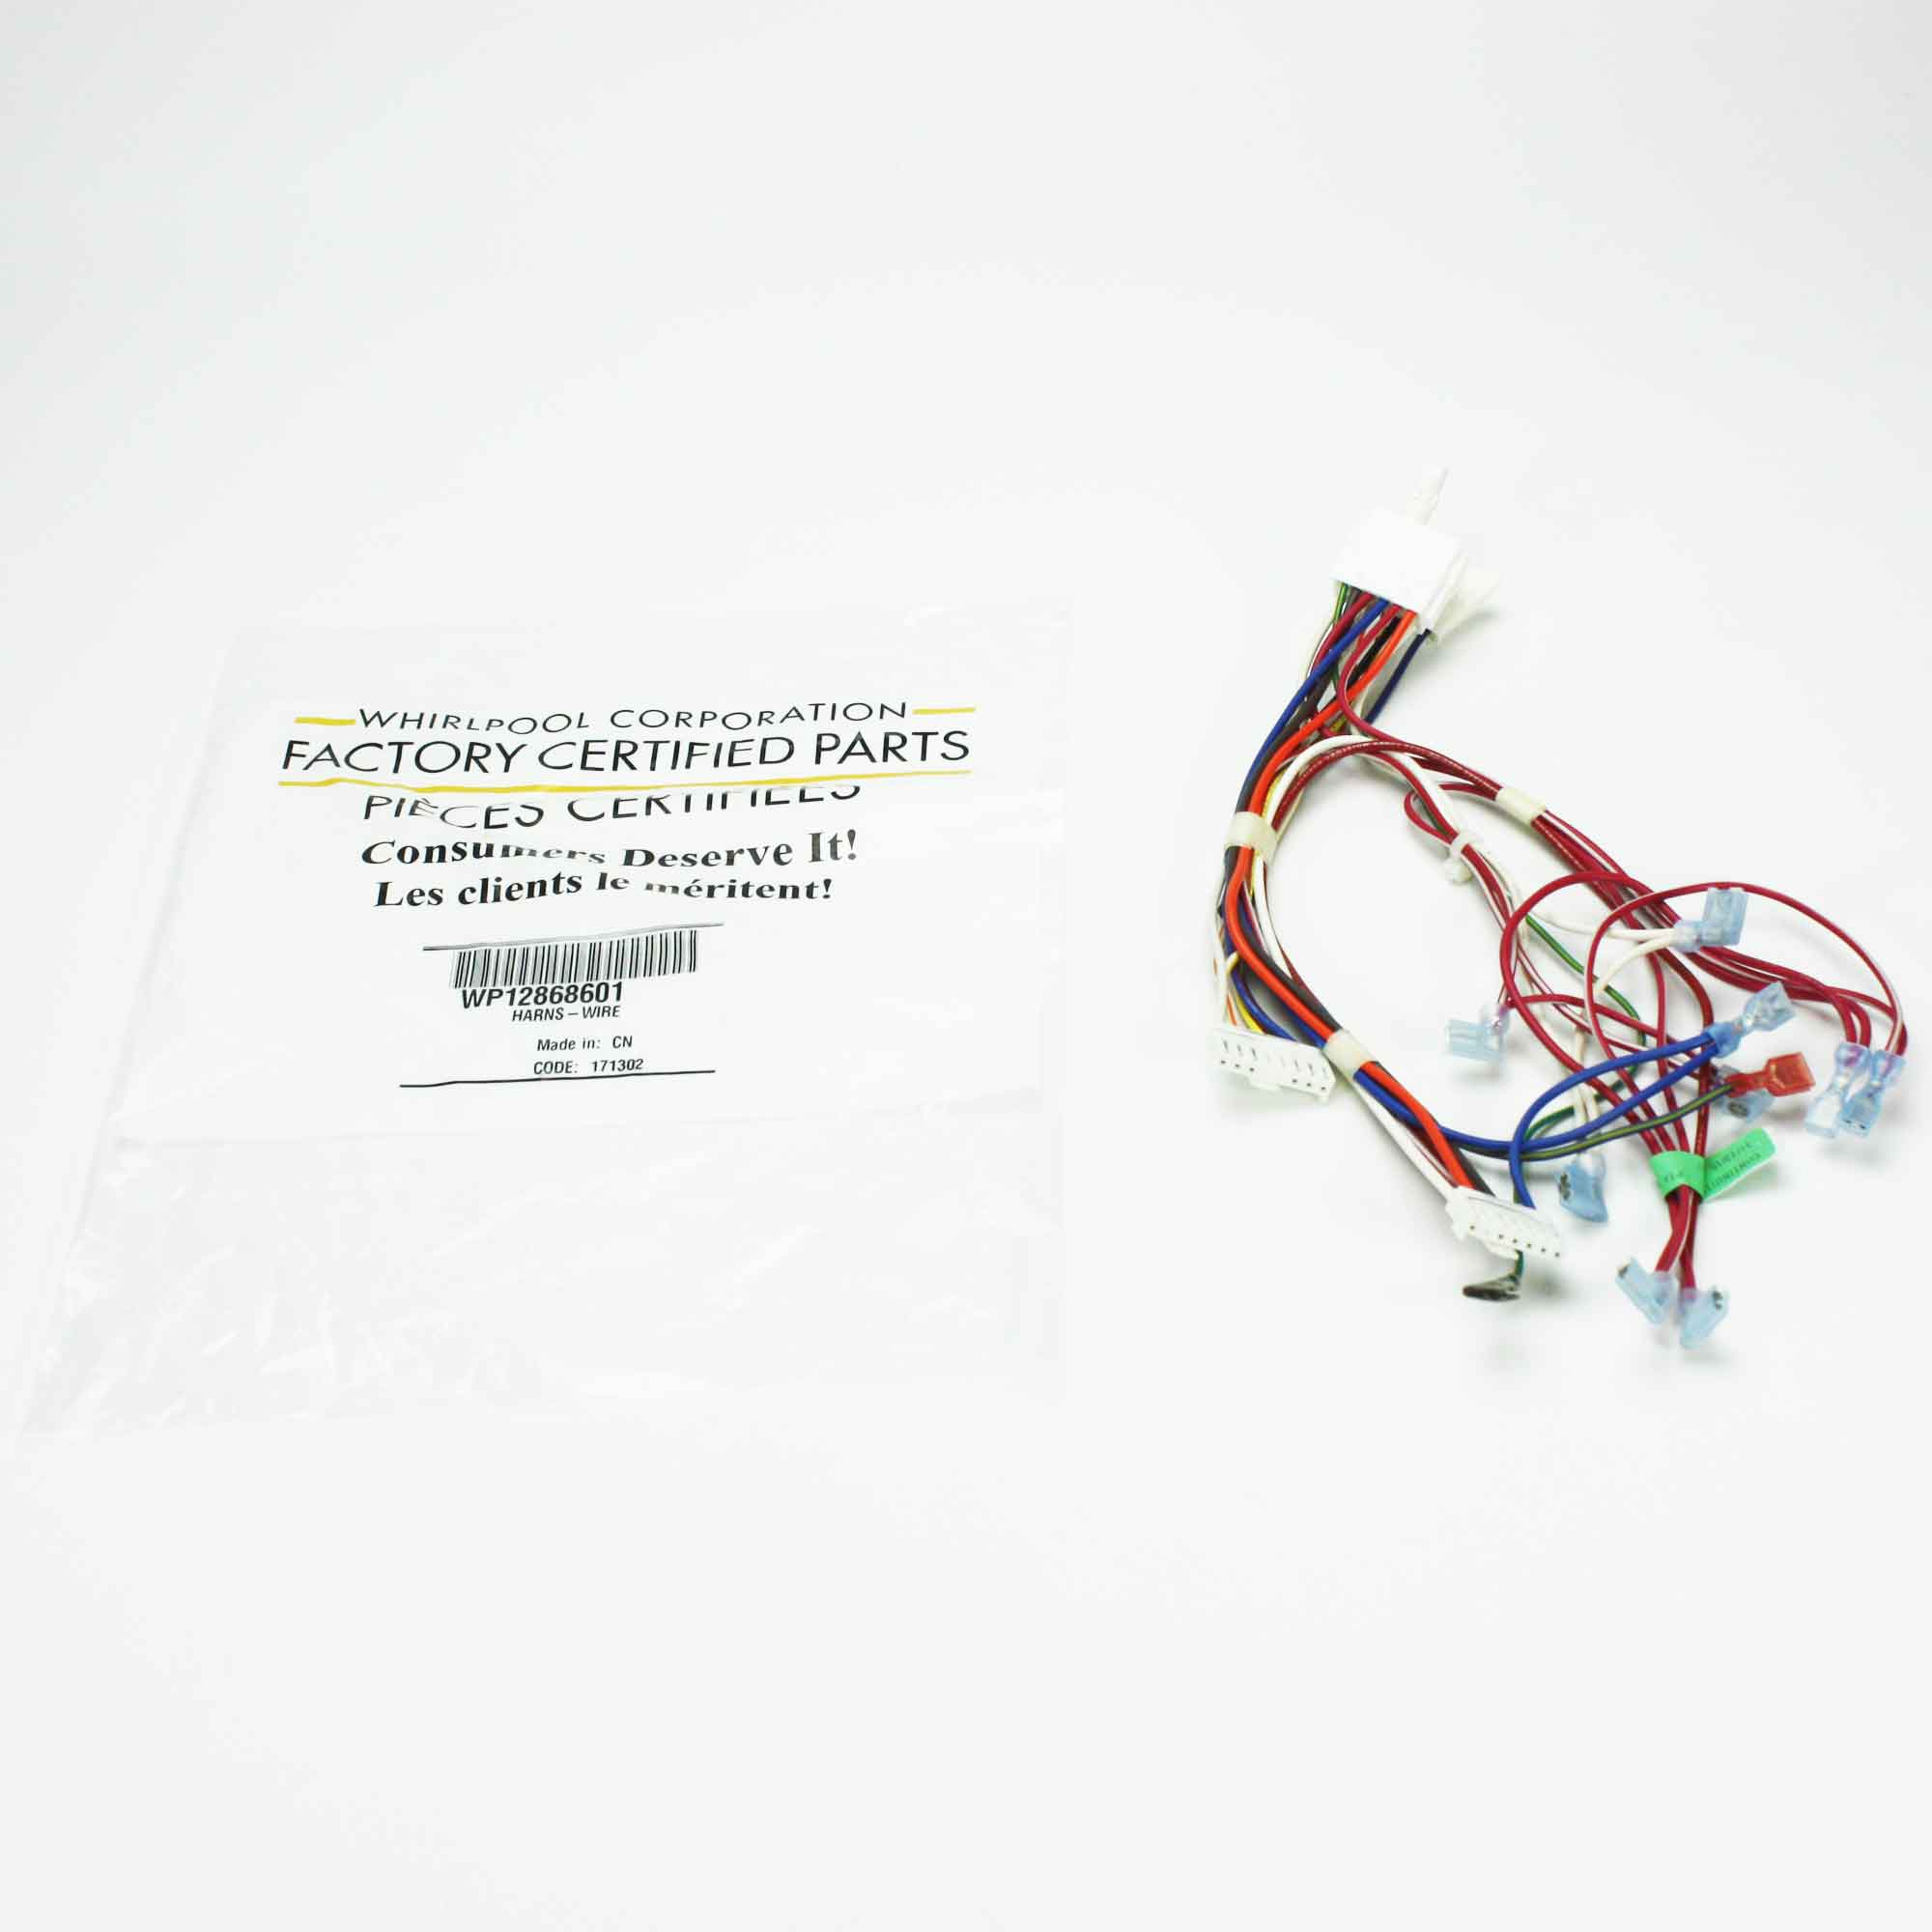 Wp12868601 For Whirlpool Refrigerator Wire Harness Ebay Appliance